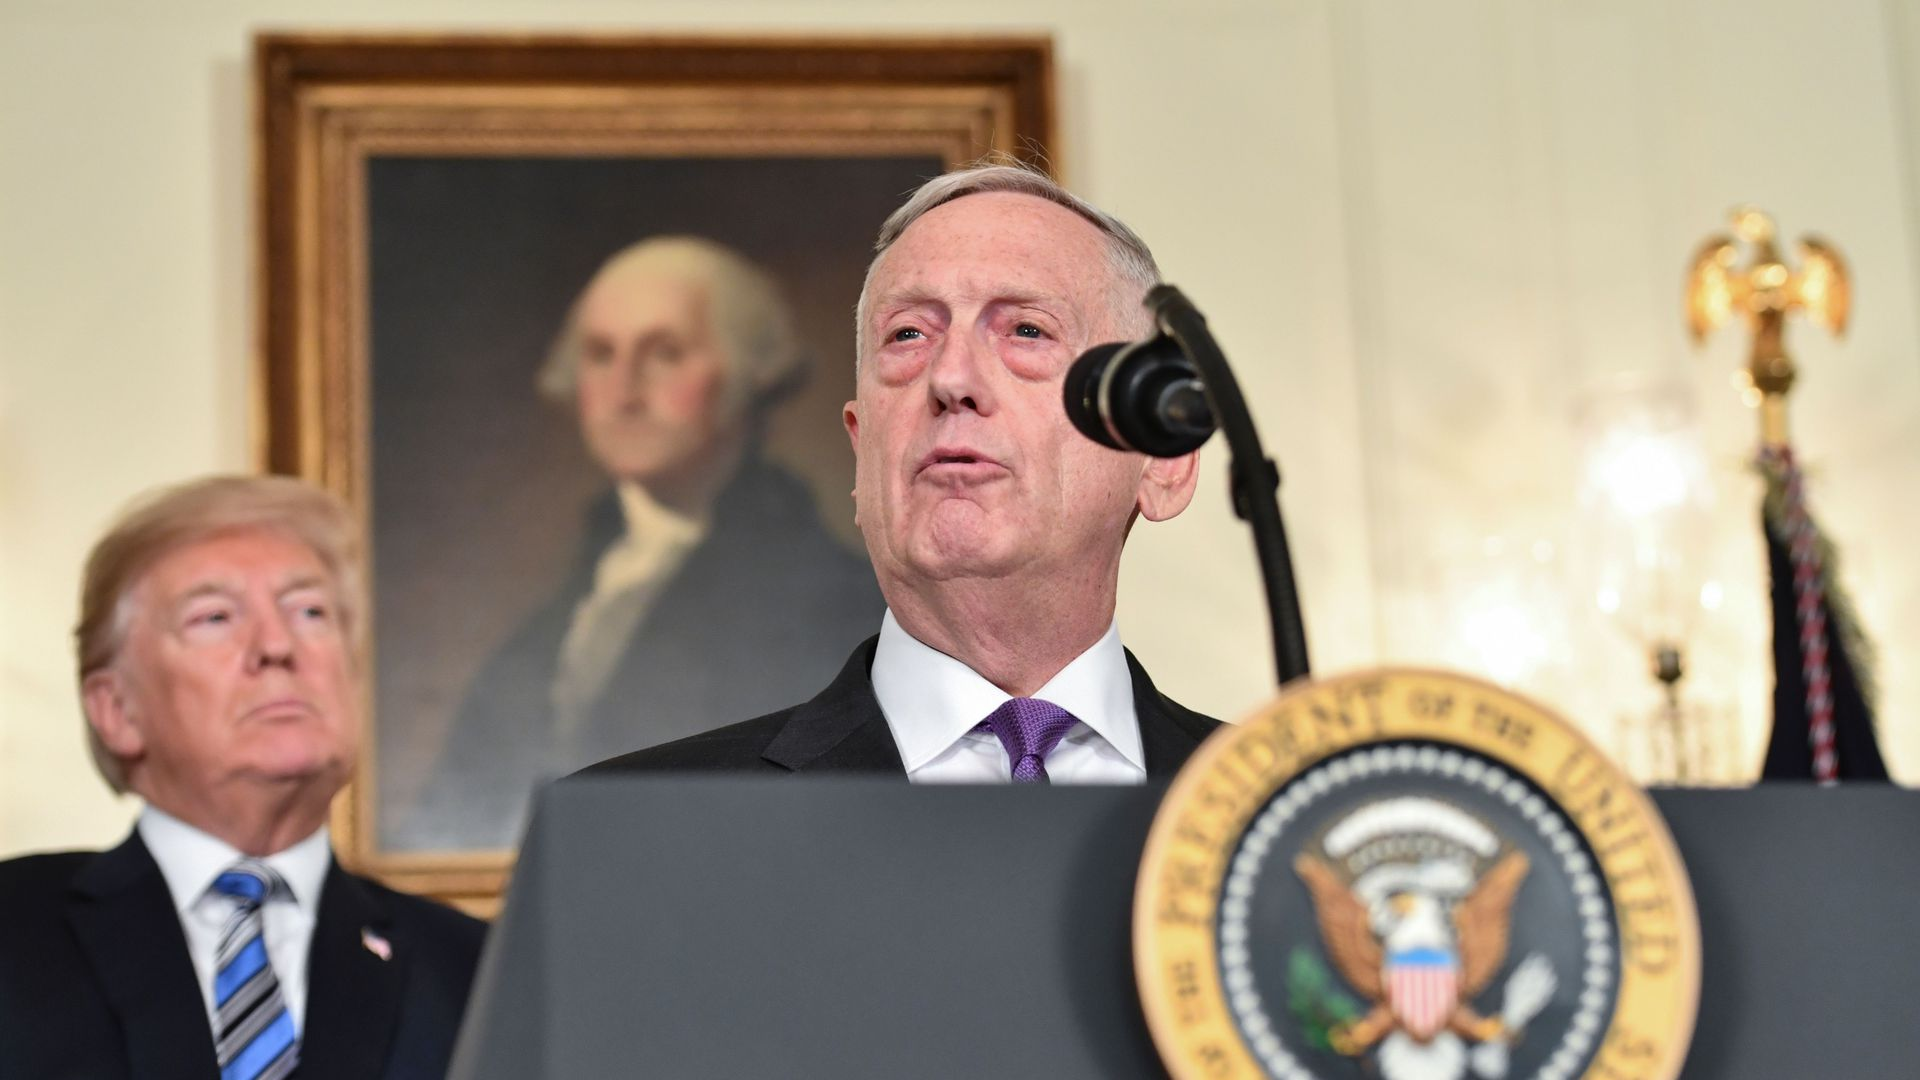 President Trump looks with concern at Secretary of Defense Jim Mattis as Mattis speaks at a podium.